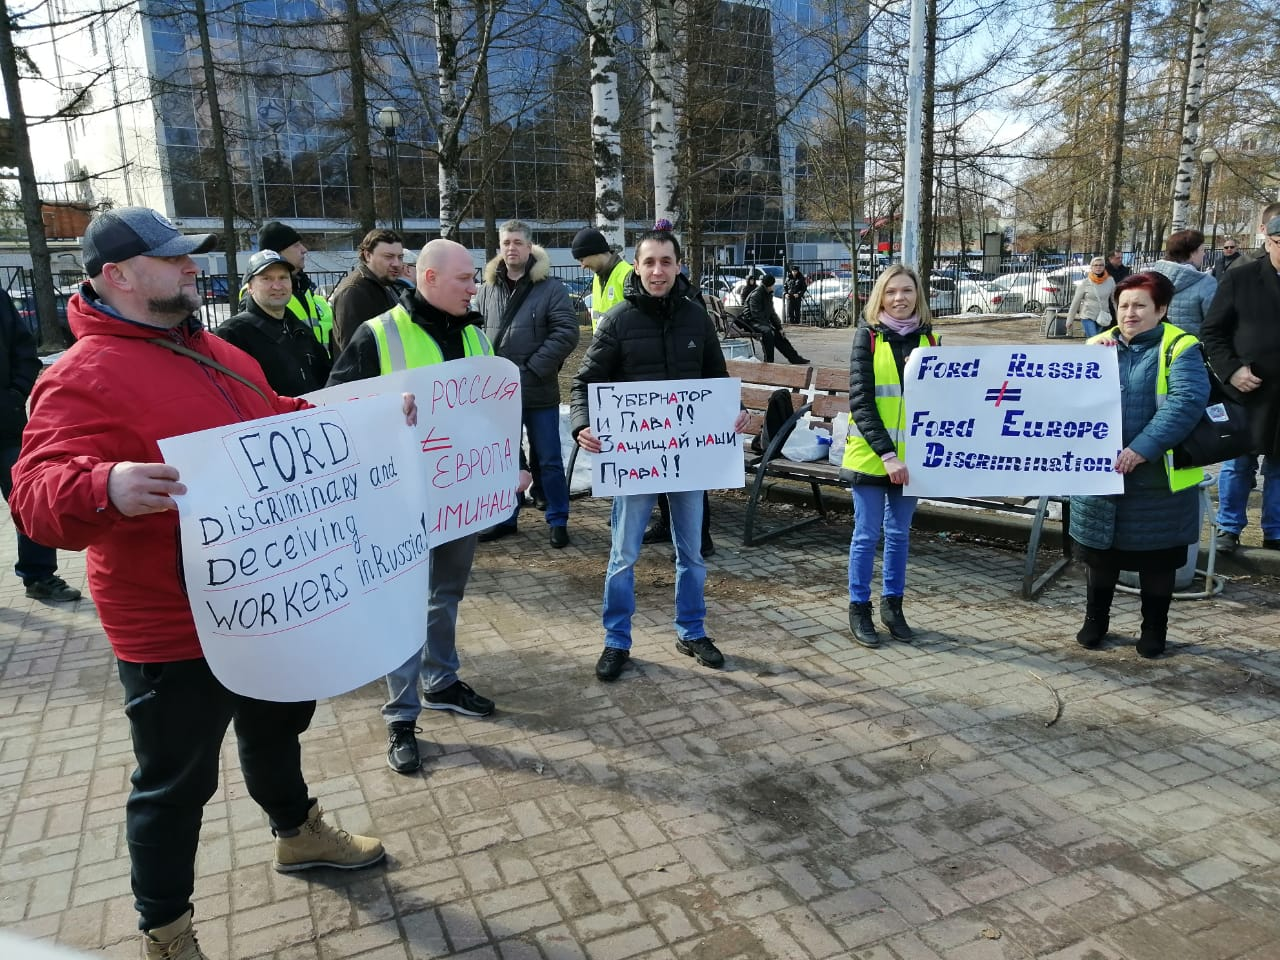 Ford workers in Russia demand decent compensation